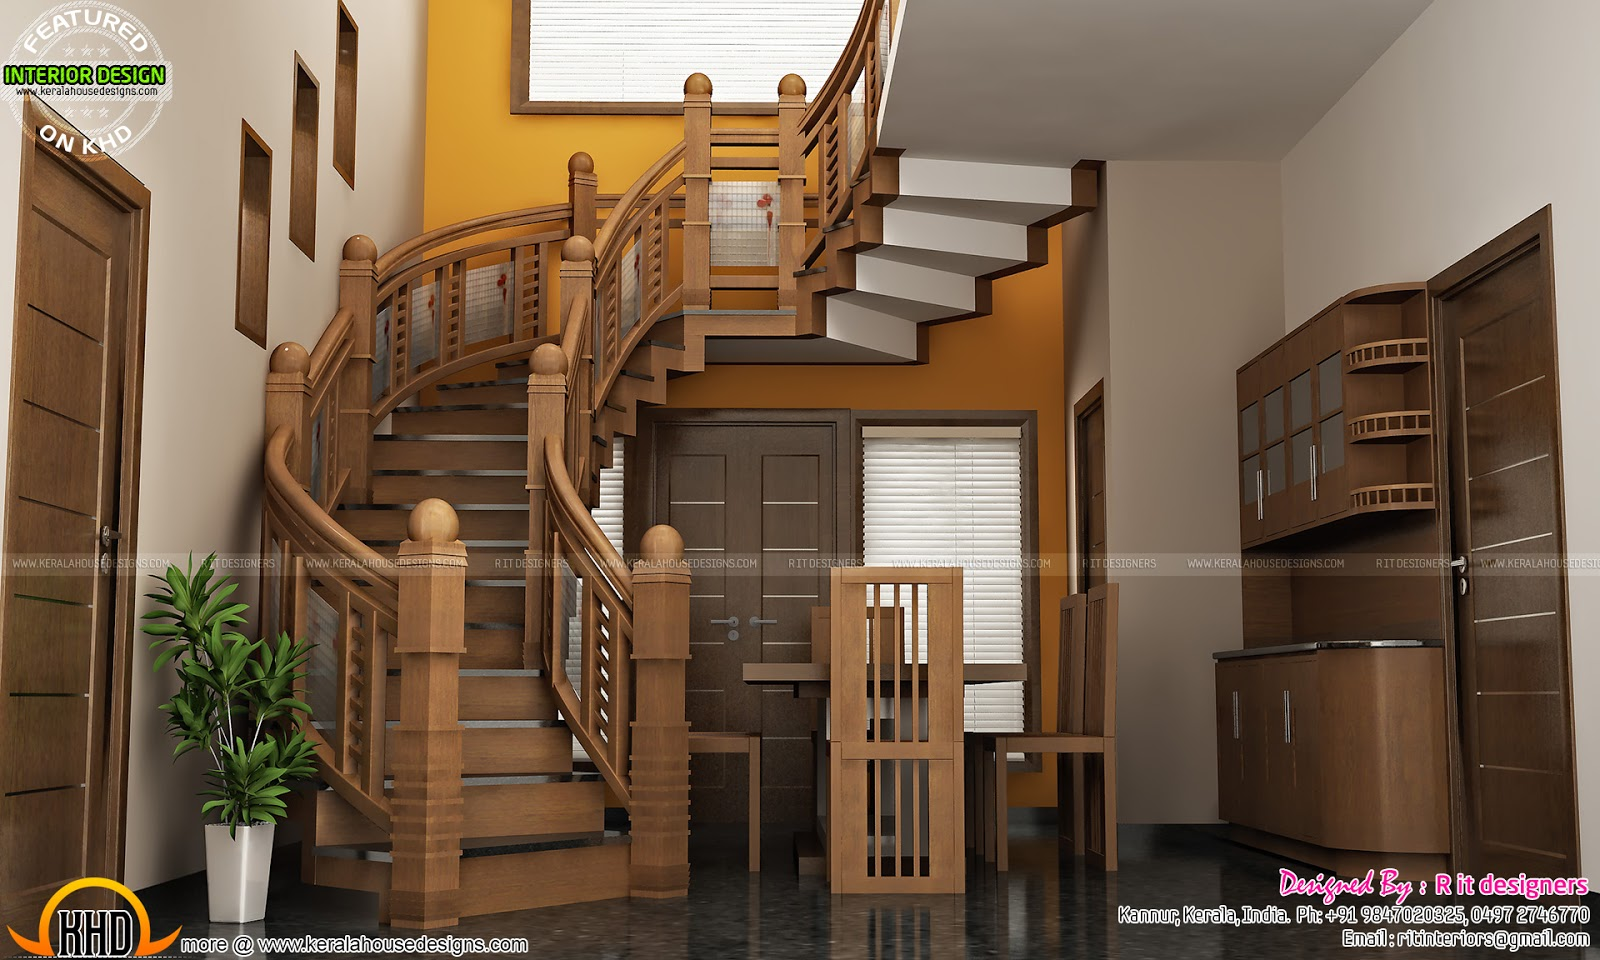 Under stair design wooden stair kitchen and living for House and home interior design